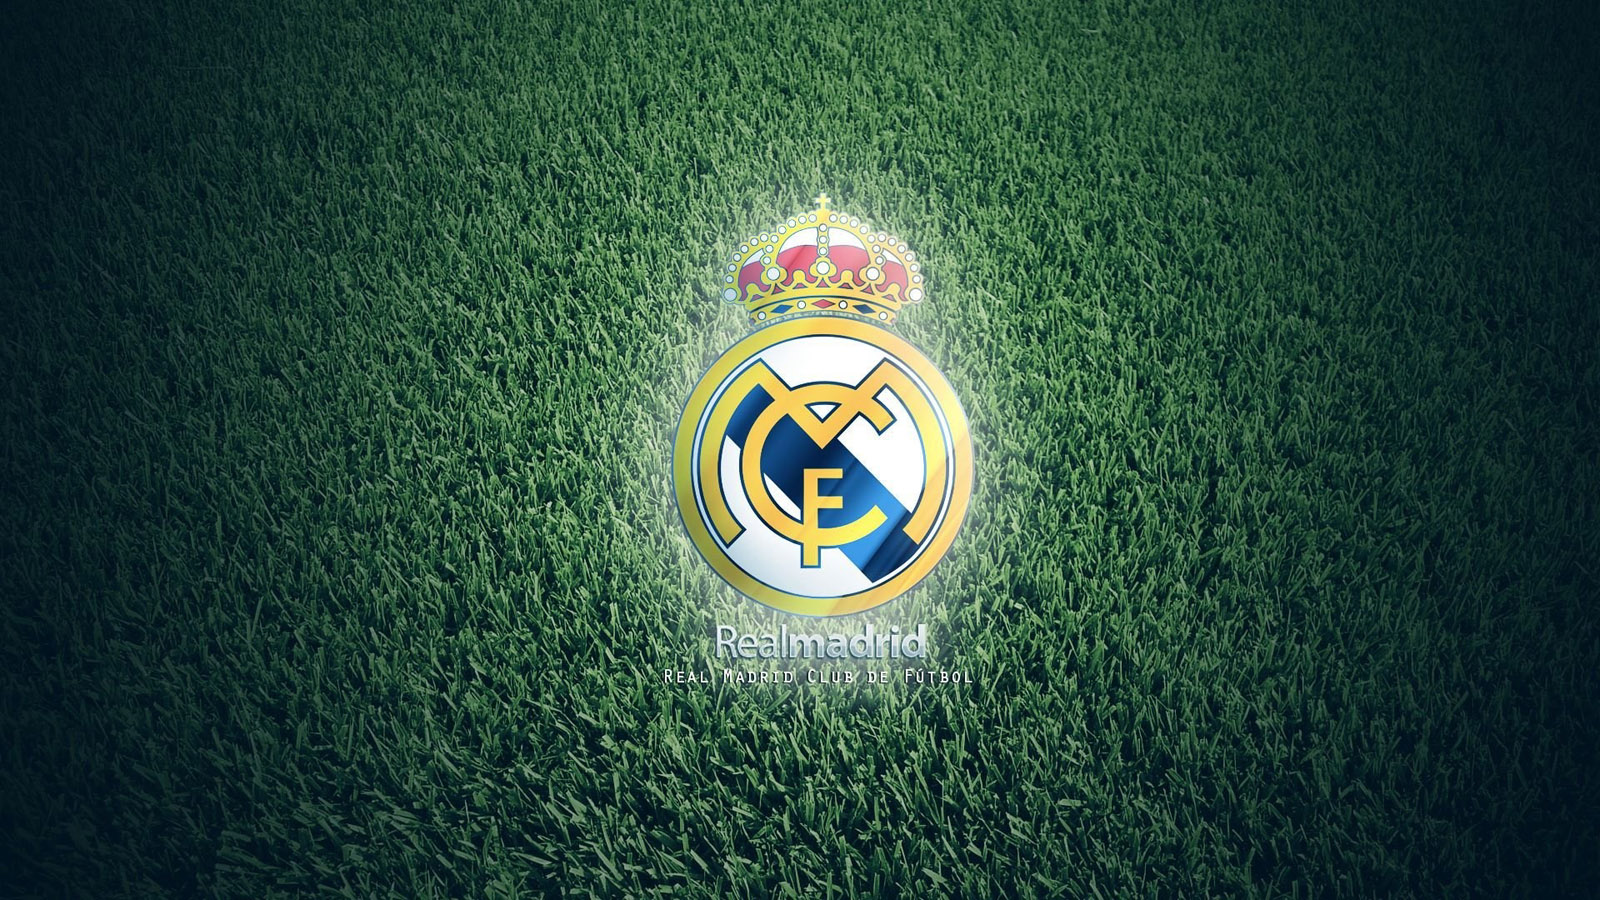 real madrid club de futbol commonly known as real madrid is a